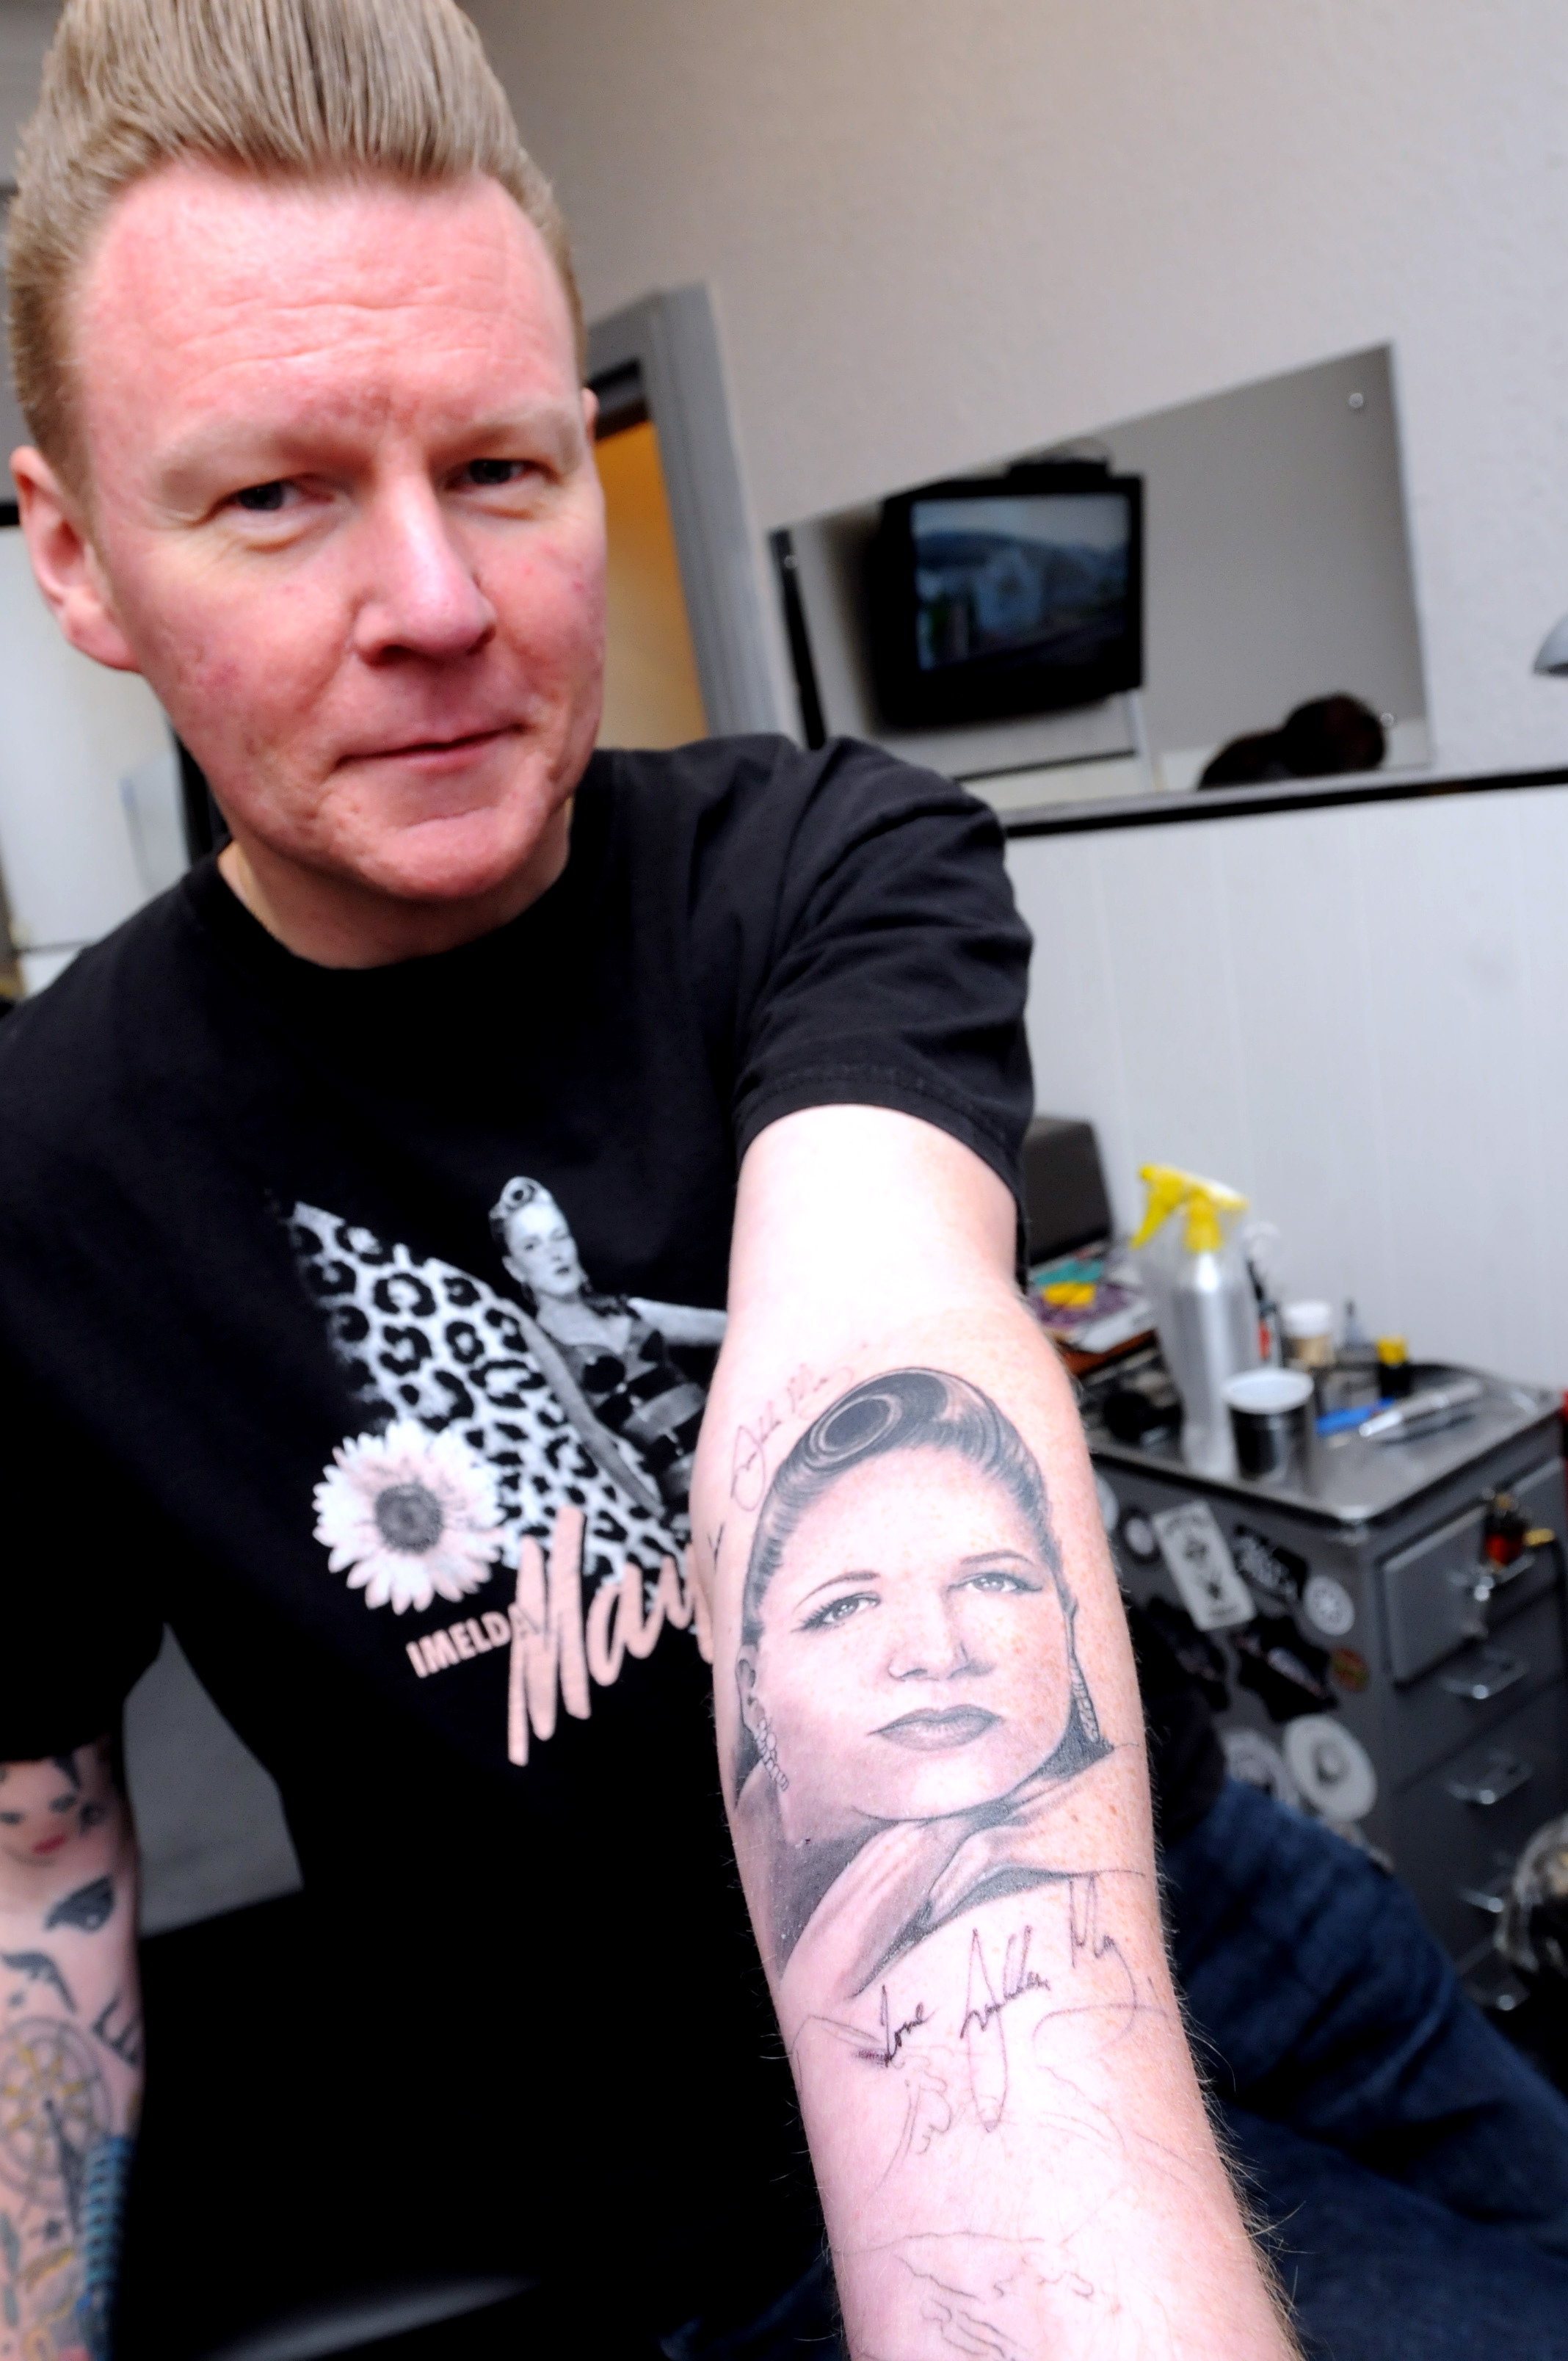 Sankey man's support for Imelda May is inked in